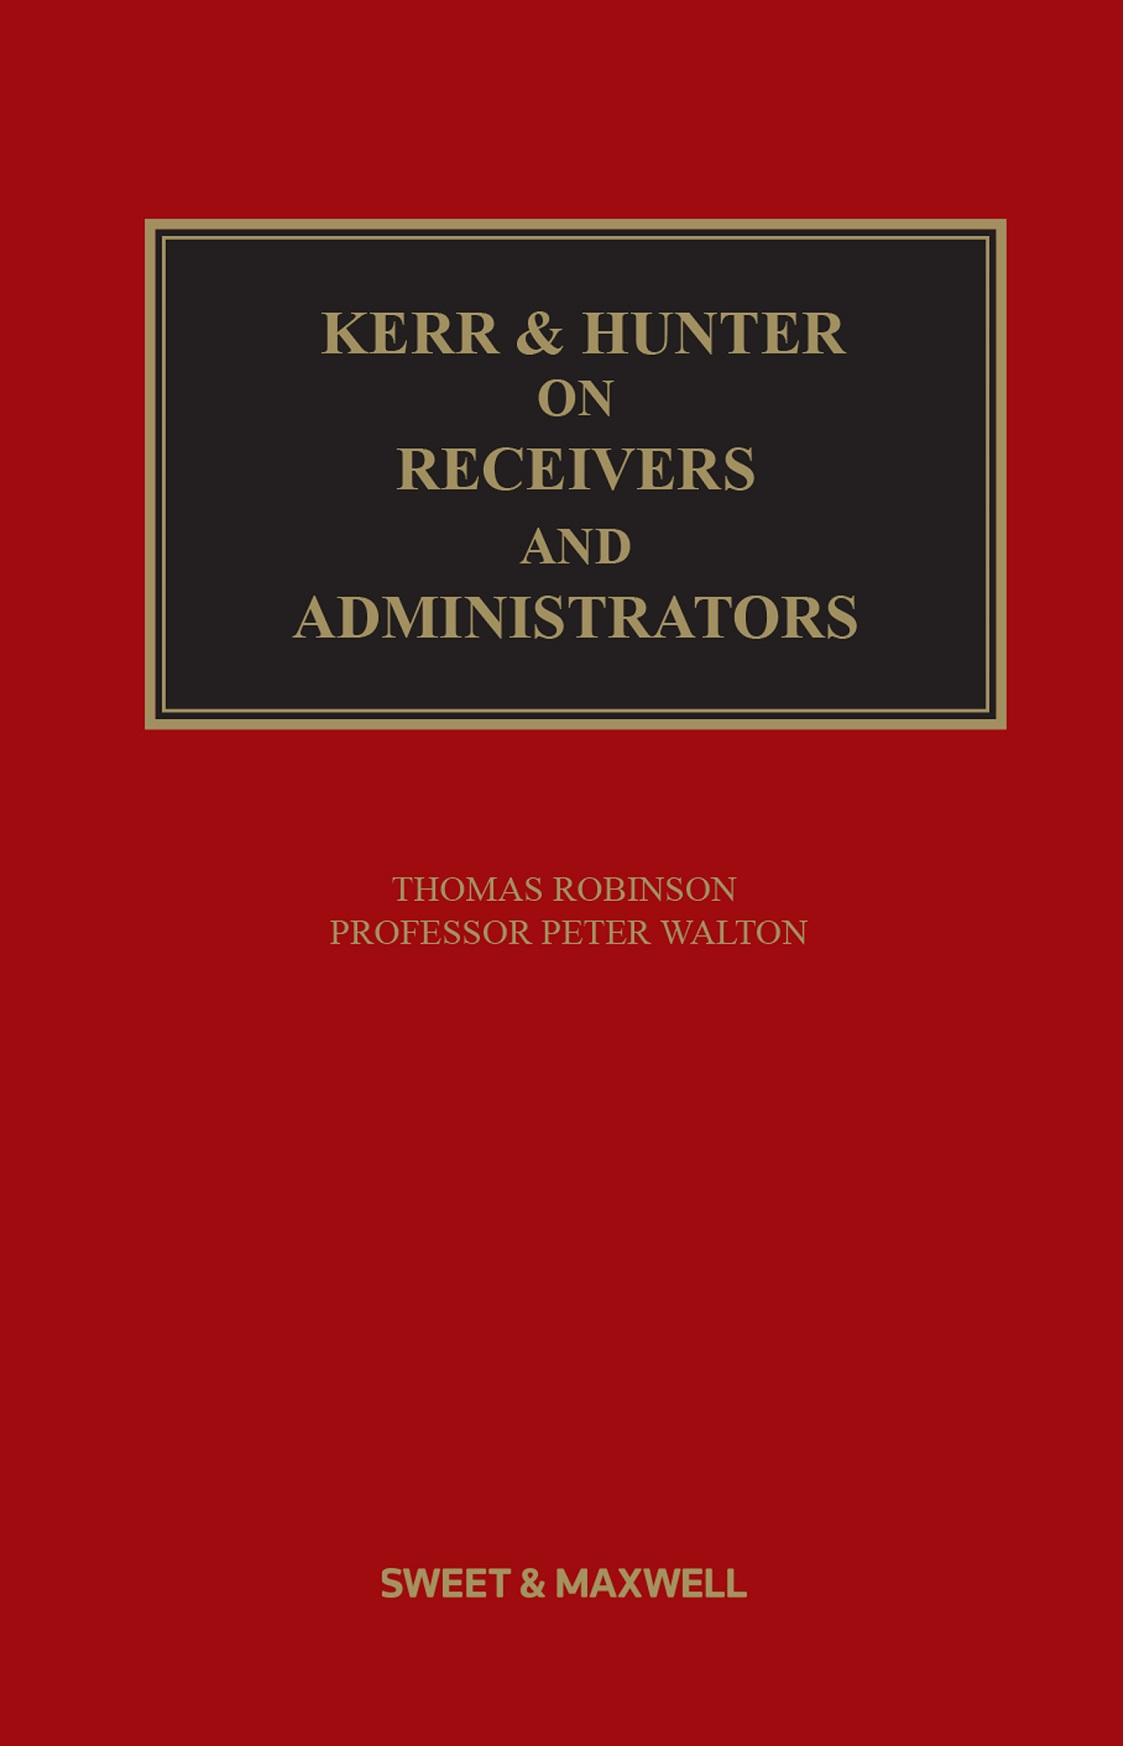 Kerr & Hunter on Receivers and Administrators 20th edition